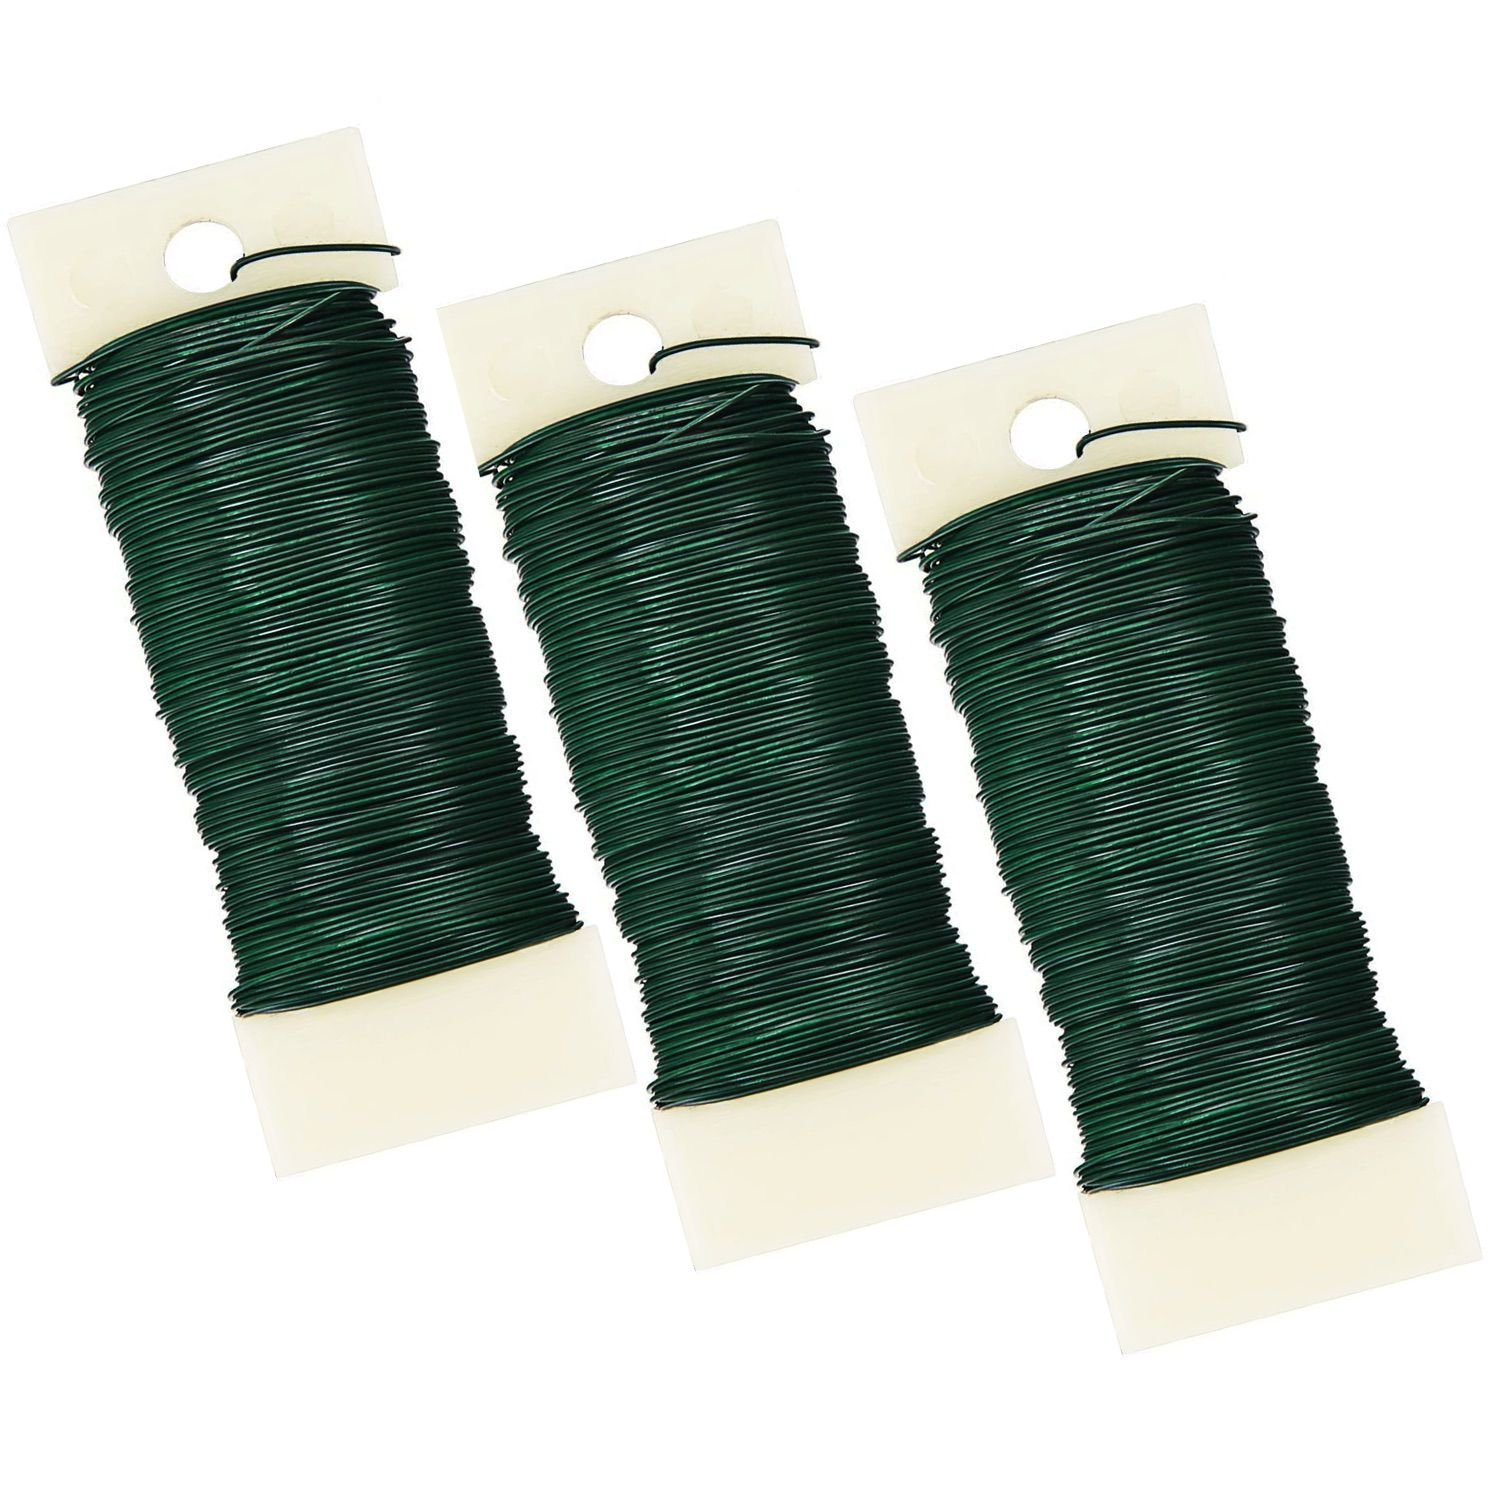 Floral-Wire-Paddle-Wire-Florist-Wire-Wreath-Wire-114-Yards